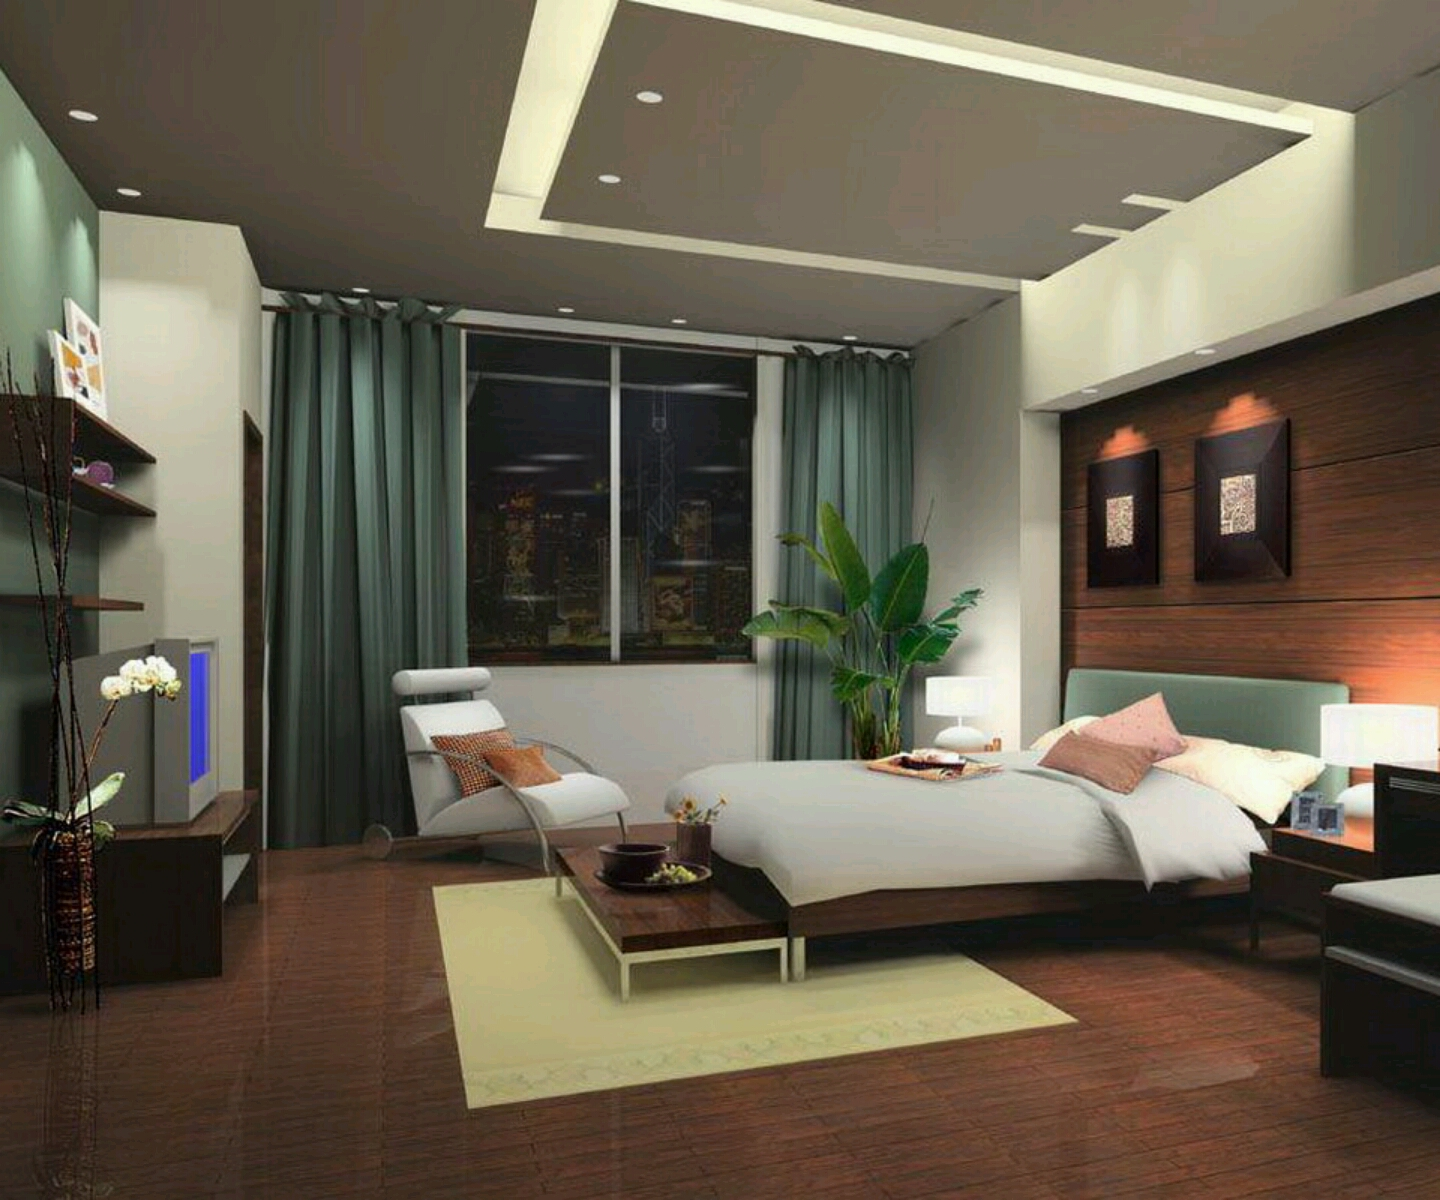 New home designs latest modern bedrooms designs best ideas for New ideas for the bedroom